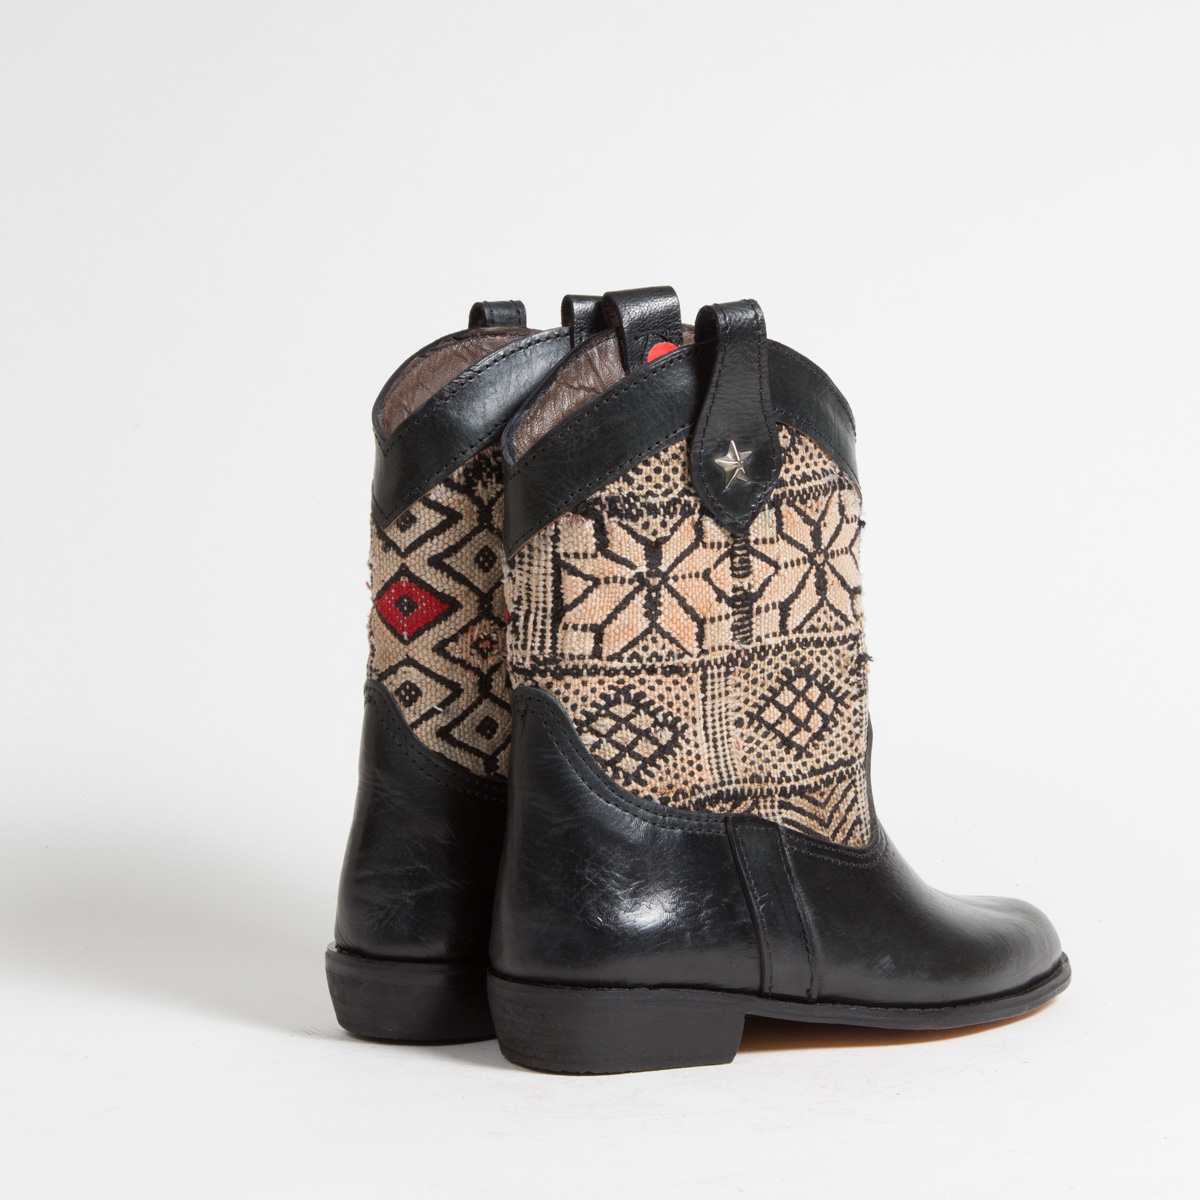 Bottines Kilim cuir mababouche artisanales (Réf. MN6-38)